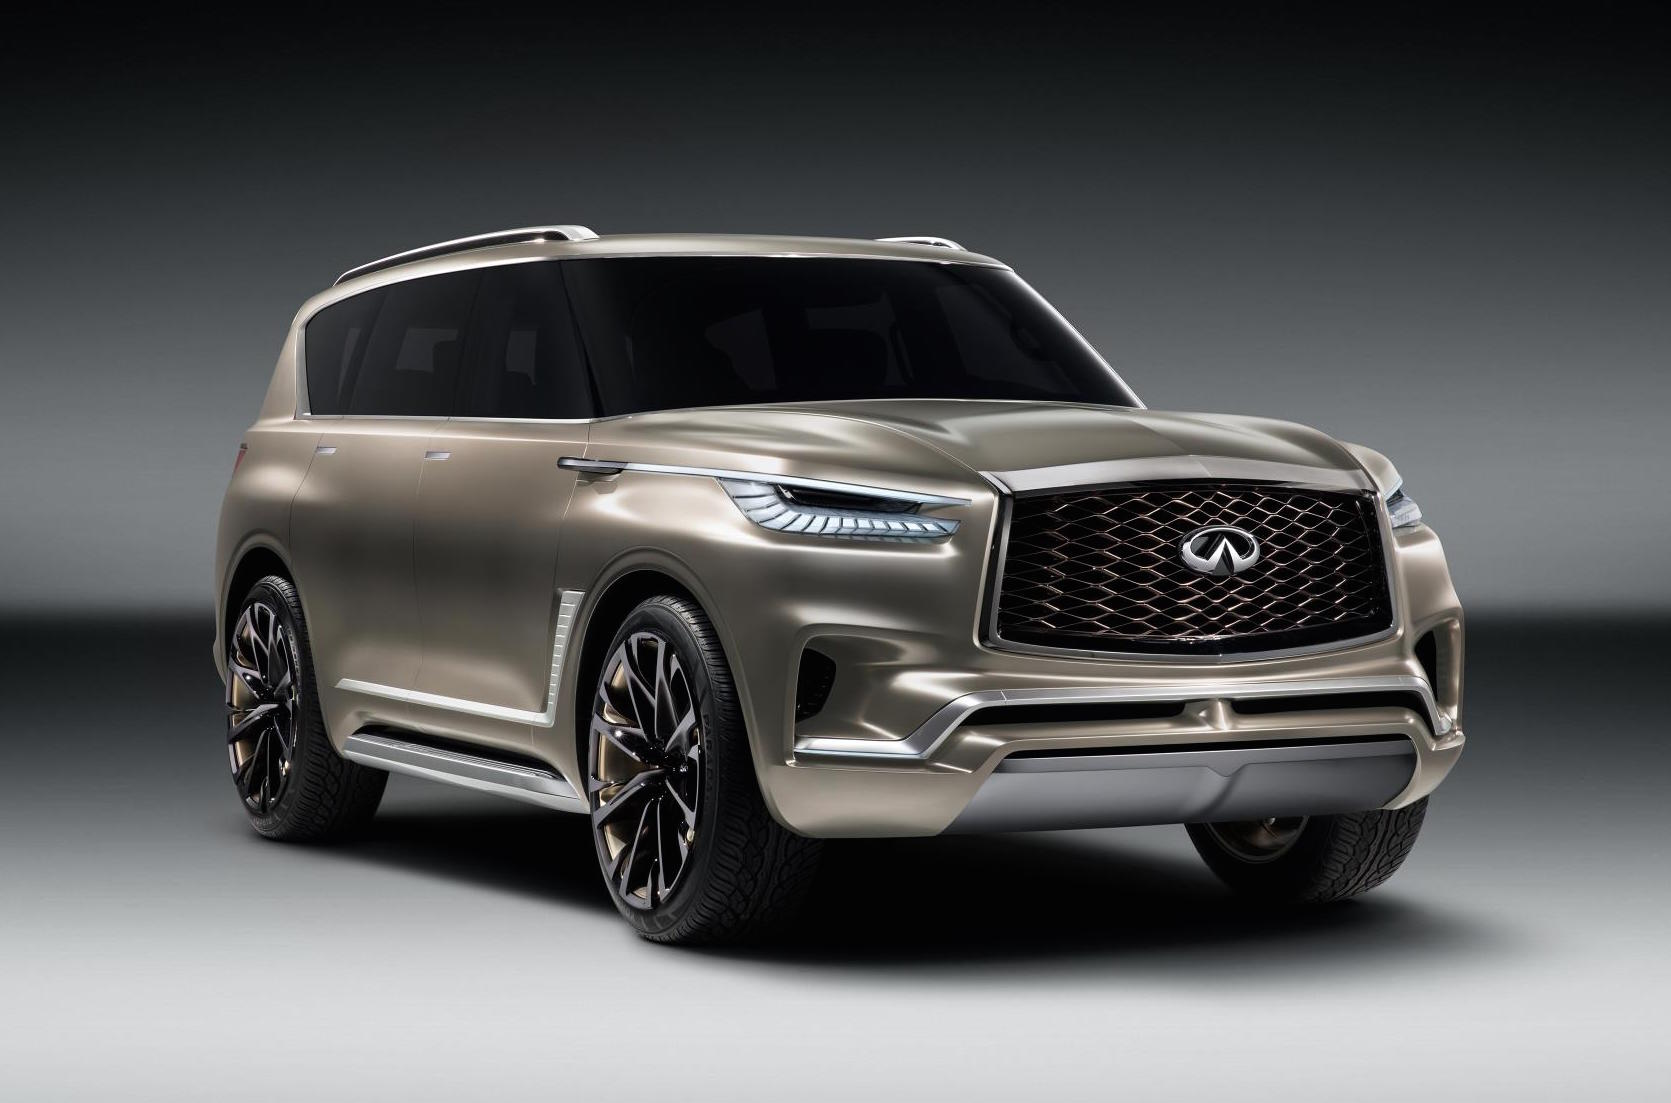 Infiniti reveals QX80 Monograph SUV concept at New York Motor Show